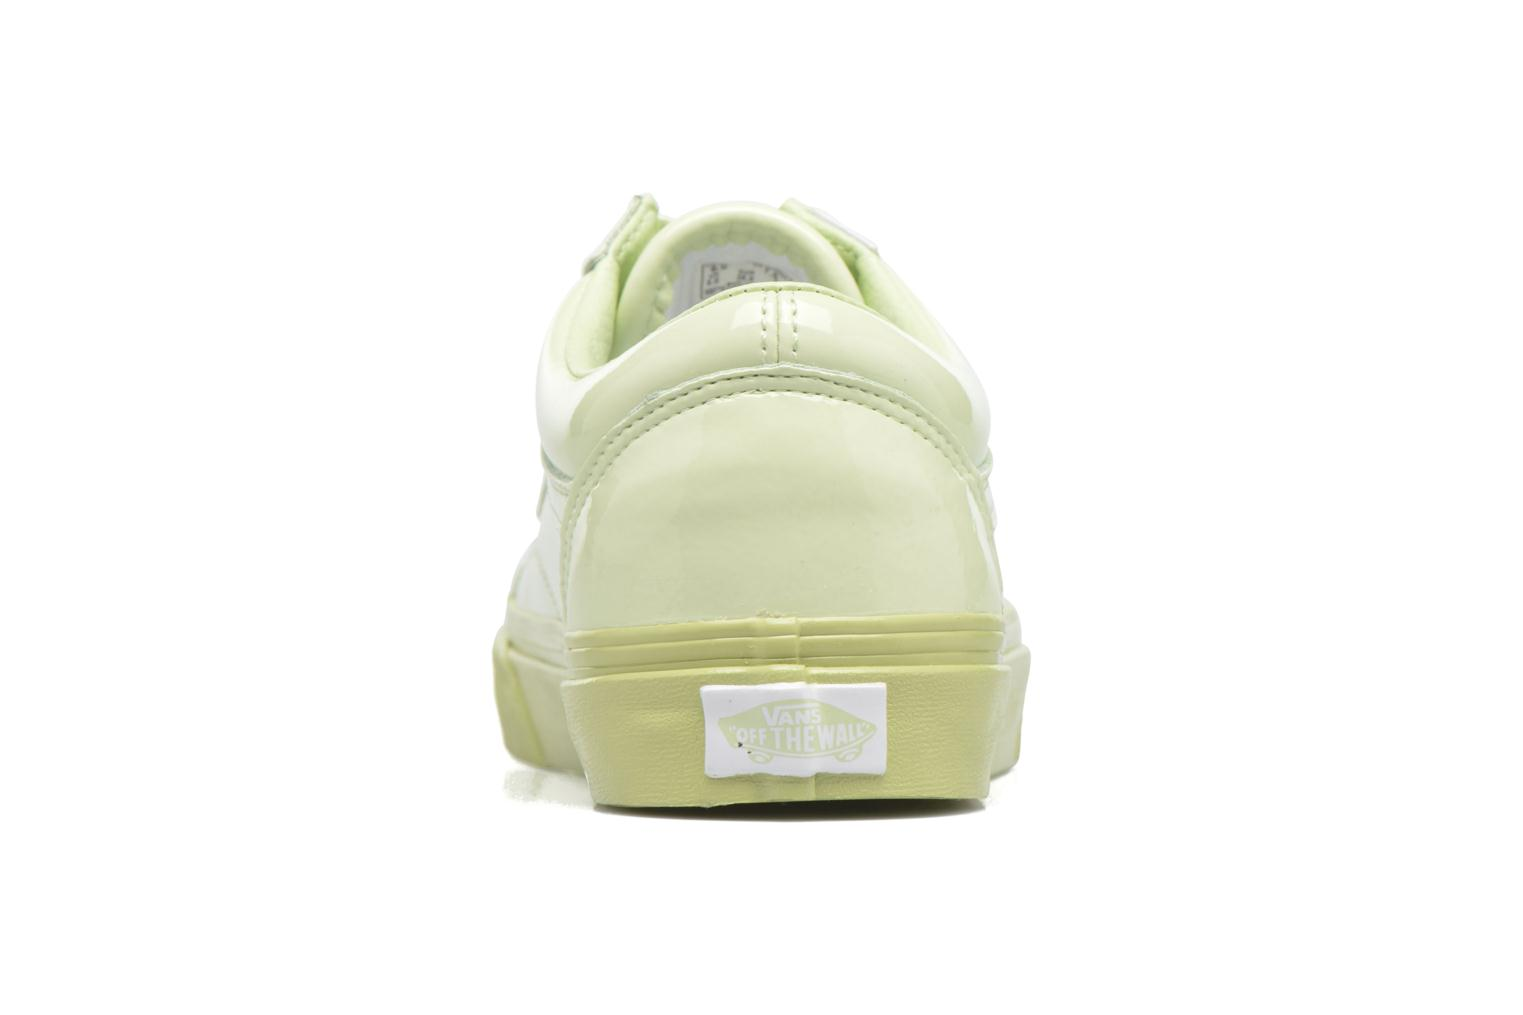 Old Skool W Patent Leather/Seafoam Green